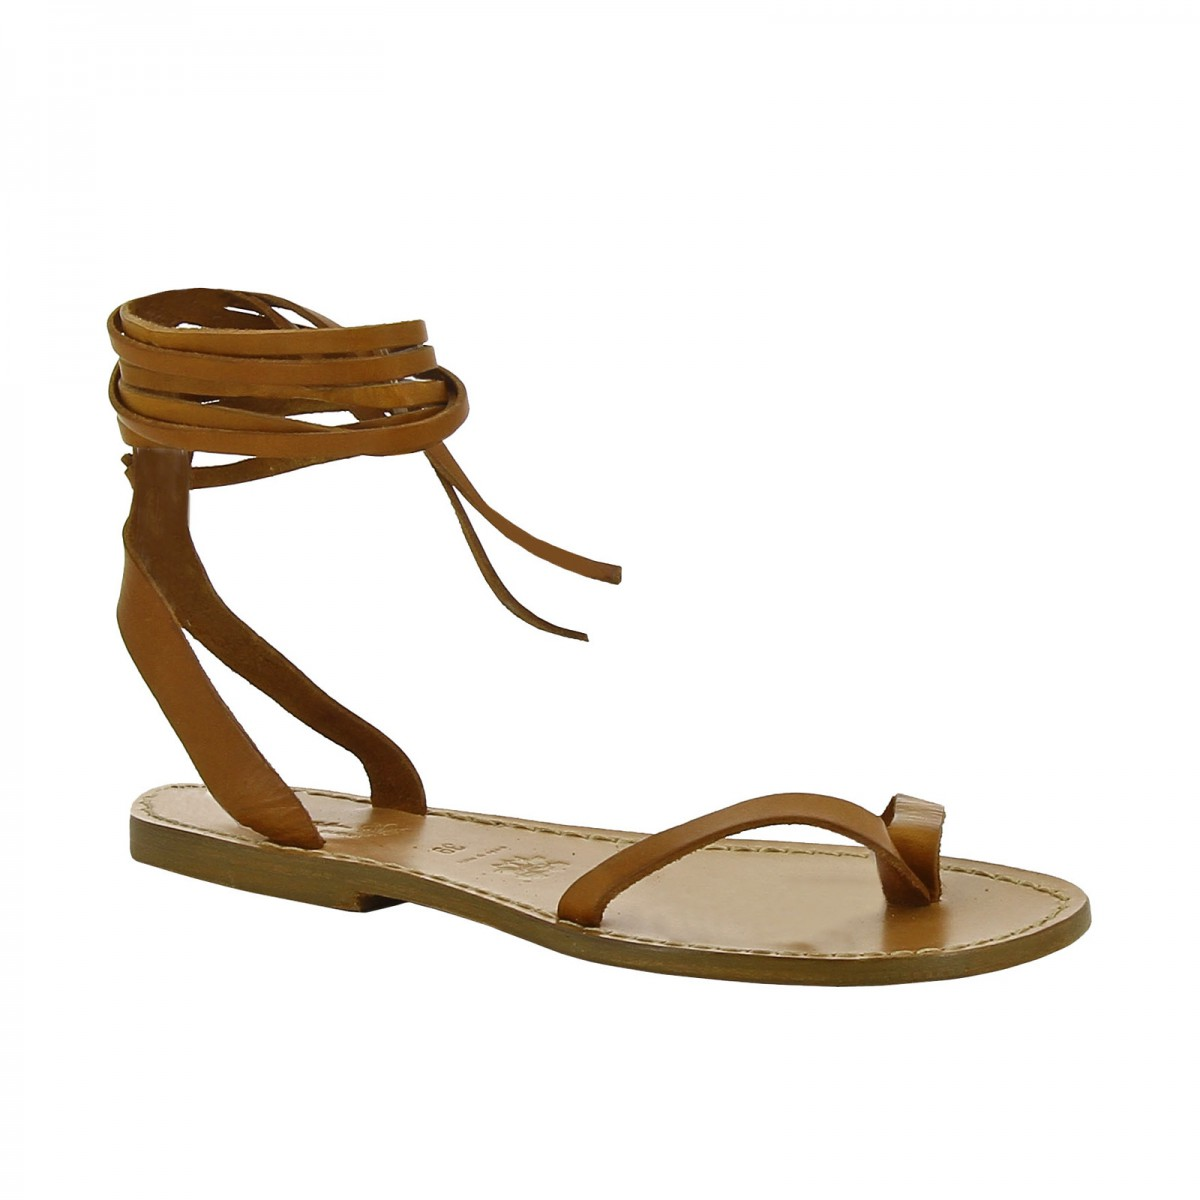 d35c234d33c06 Handmade flat strappy sandals in tan calf leather